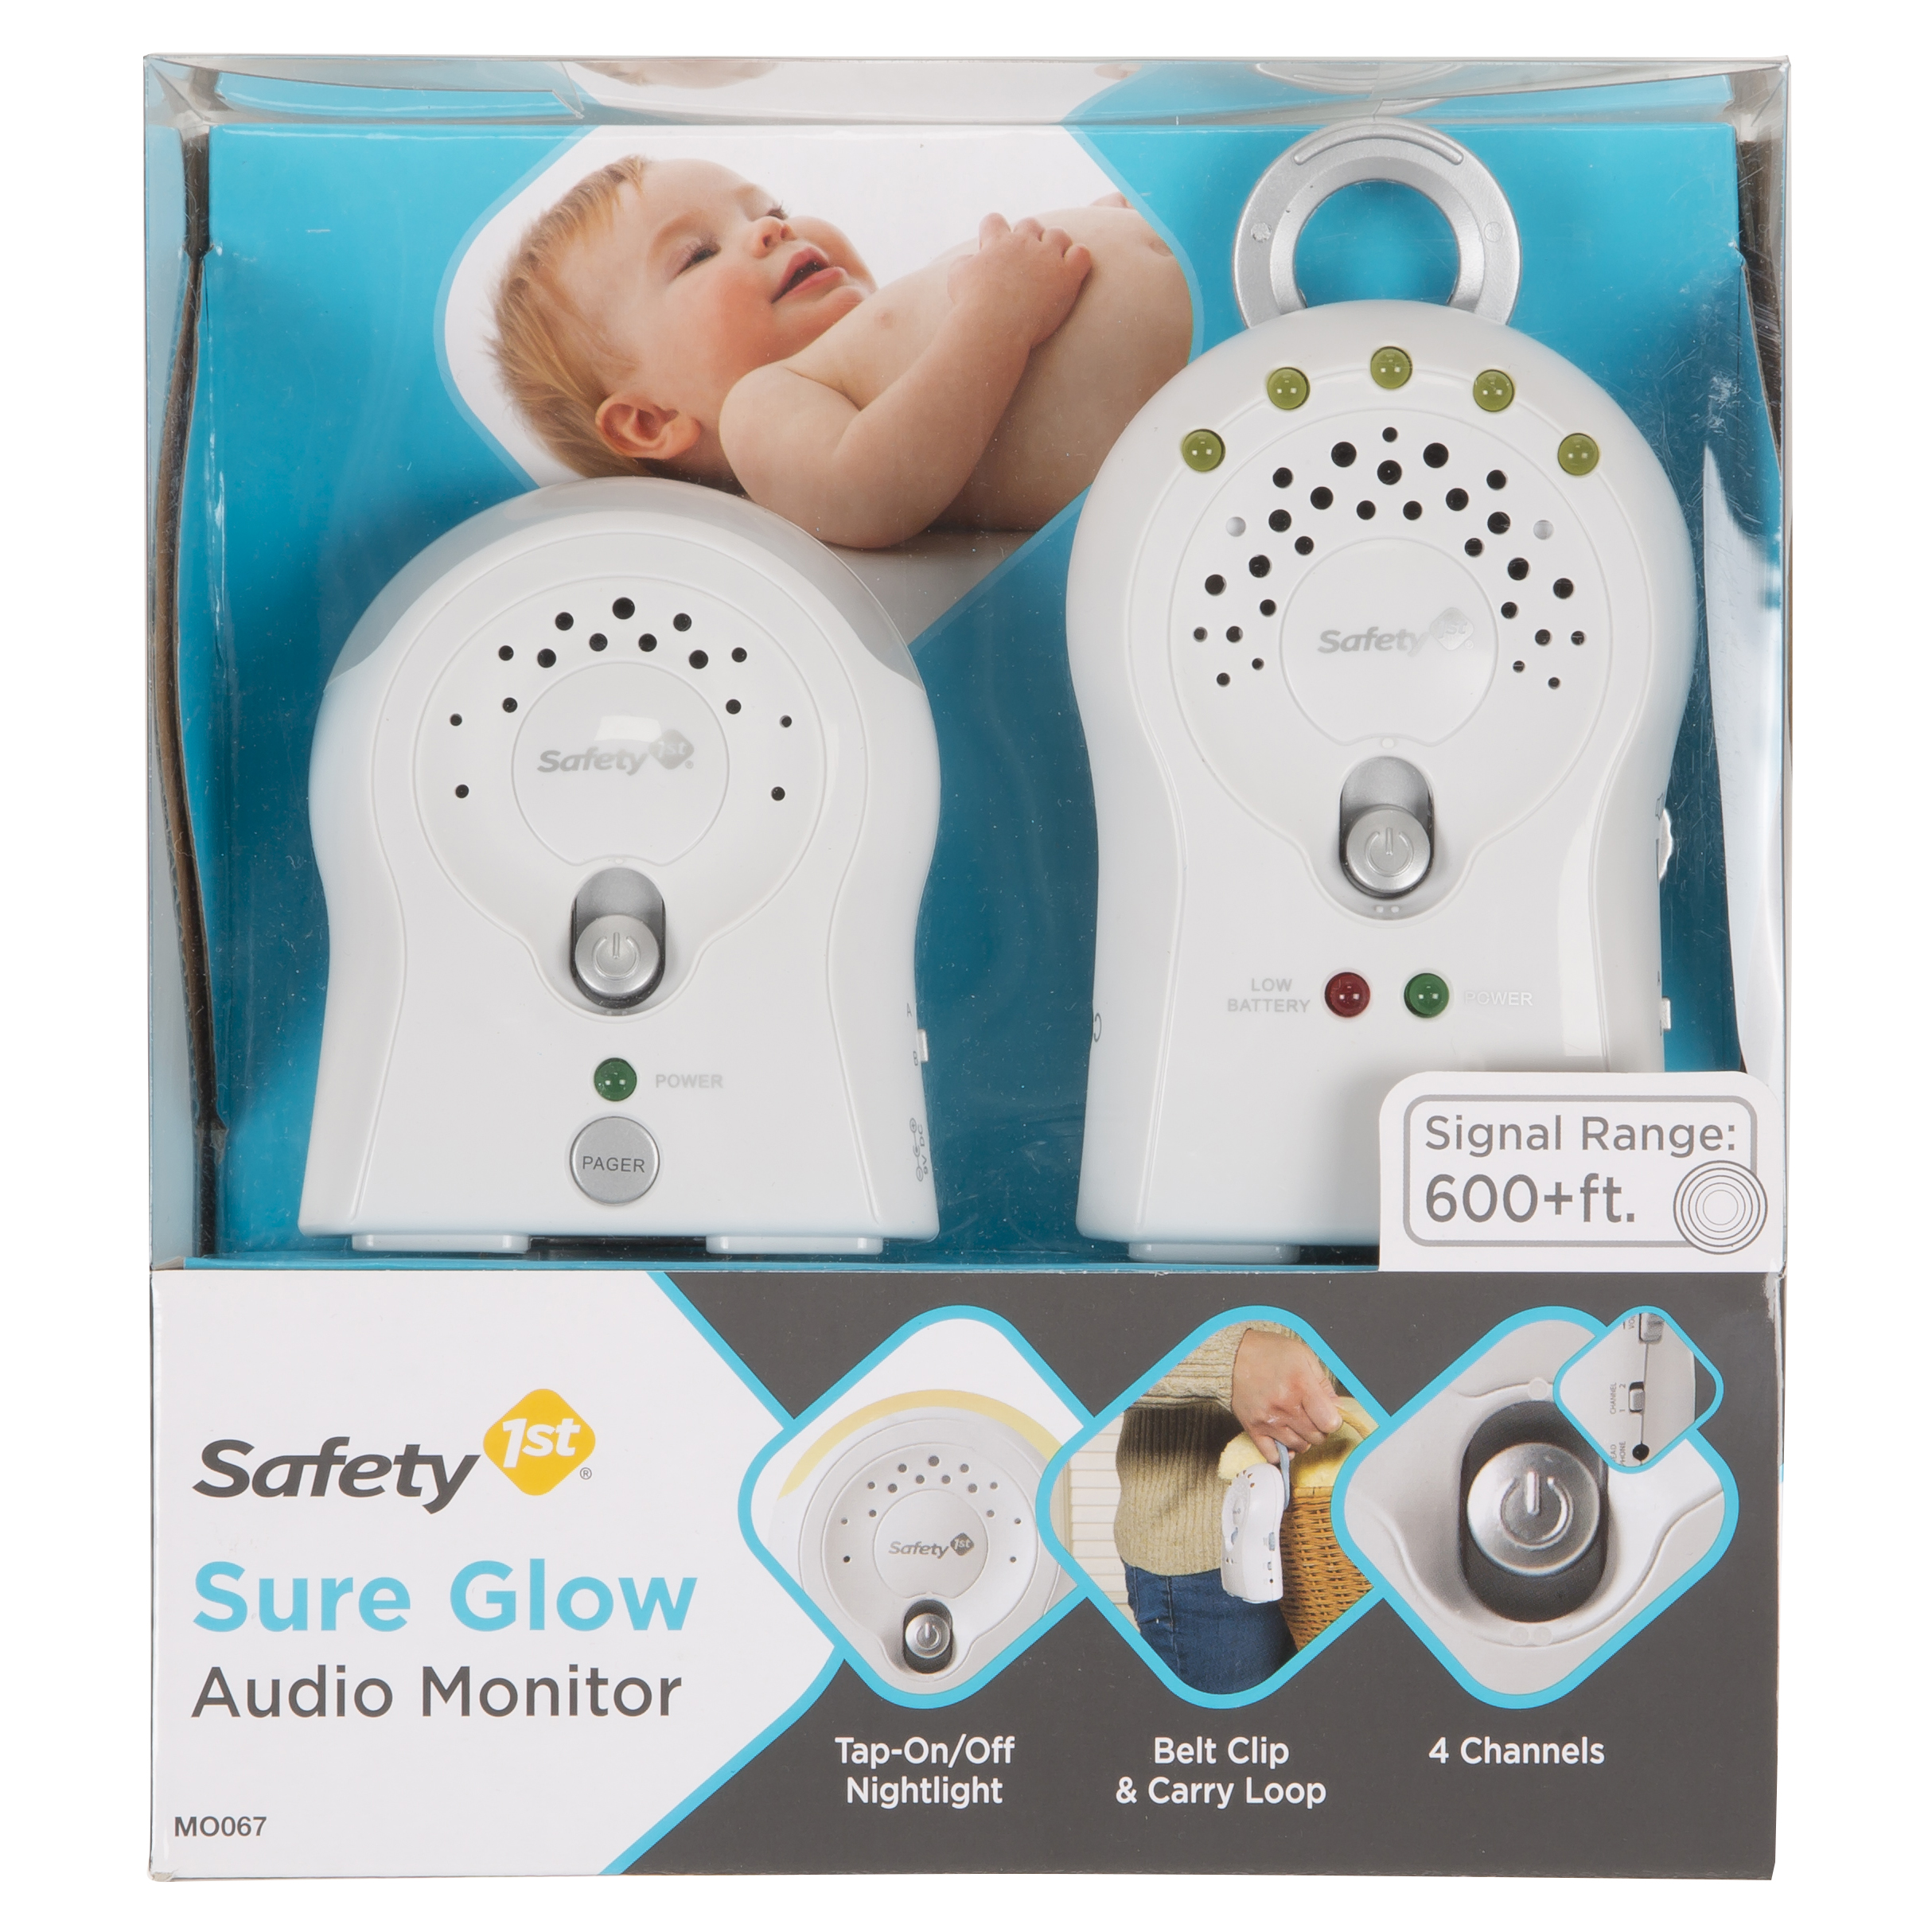 Safety 1 Sure Glow Audio Monitor, White